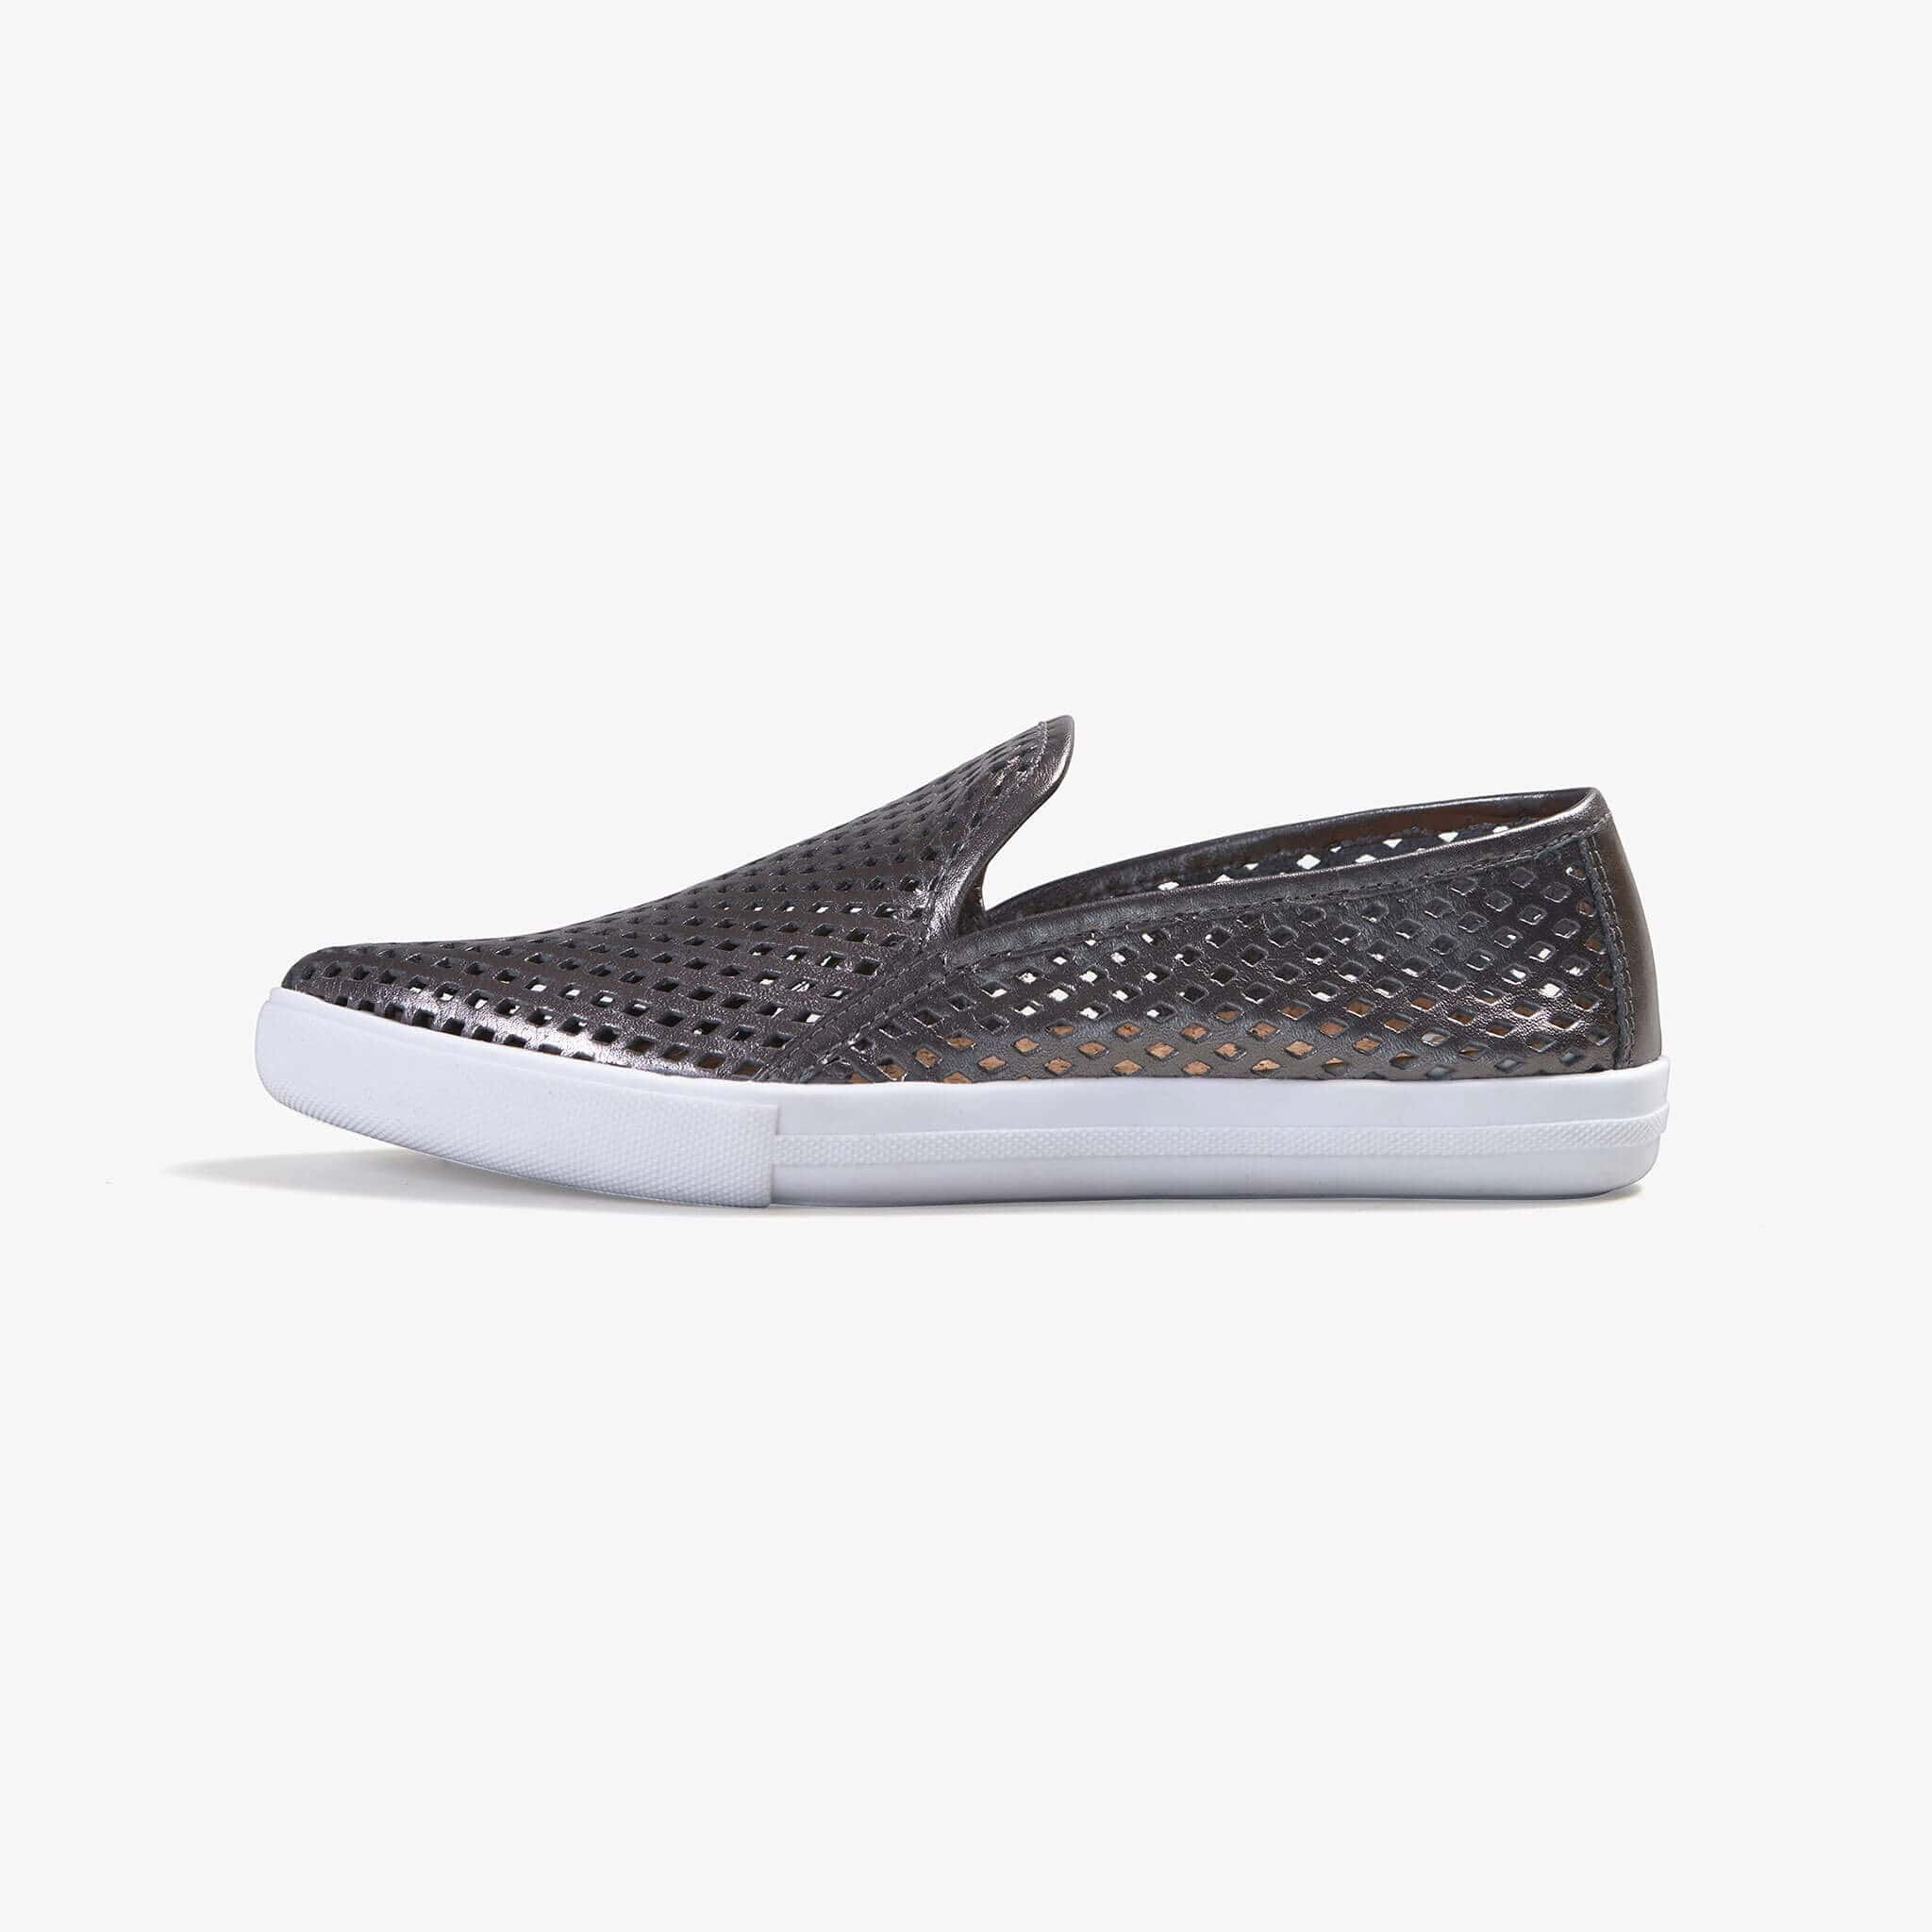 Jibs Slim Space Gray Slip On Sneaker Flat Shoe Side